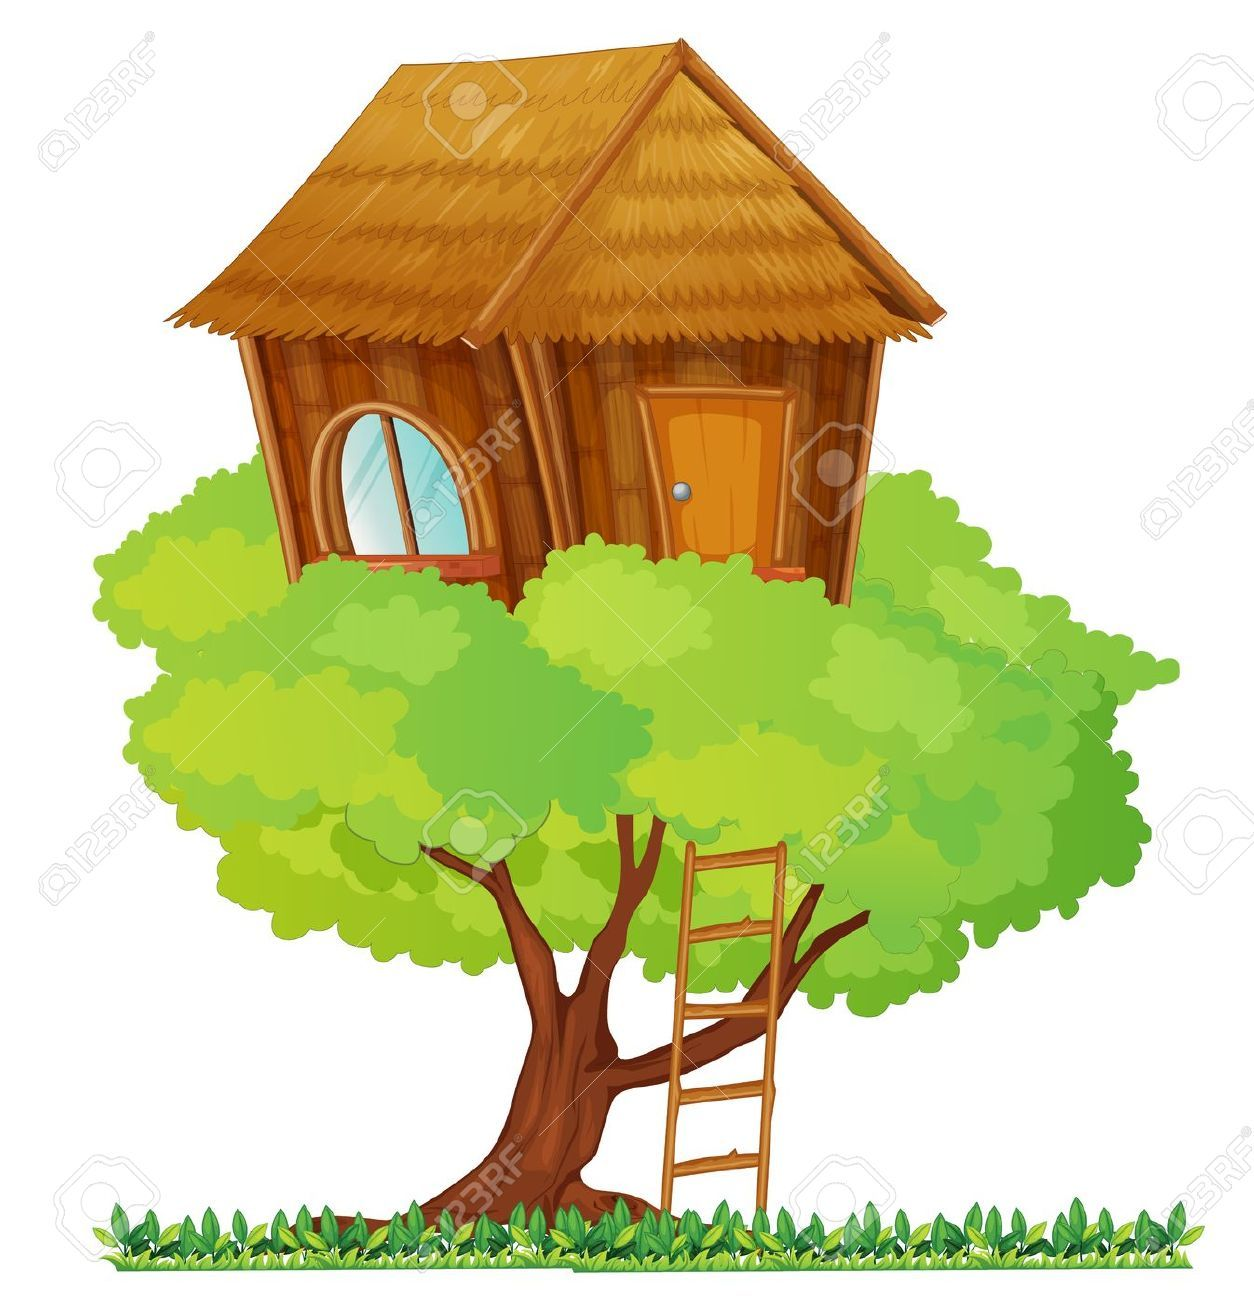 treehouse jungle playhouse pinterest photo illustration rh pinterest com treehouse clipart vector treehouse clipart free